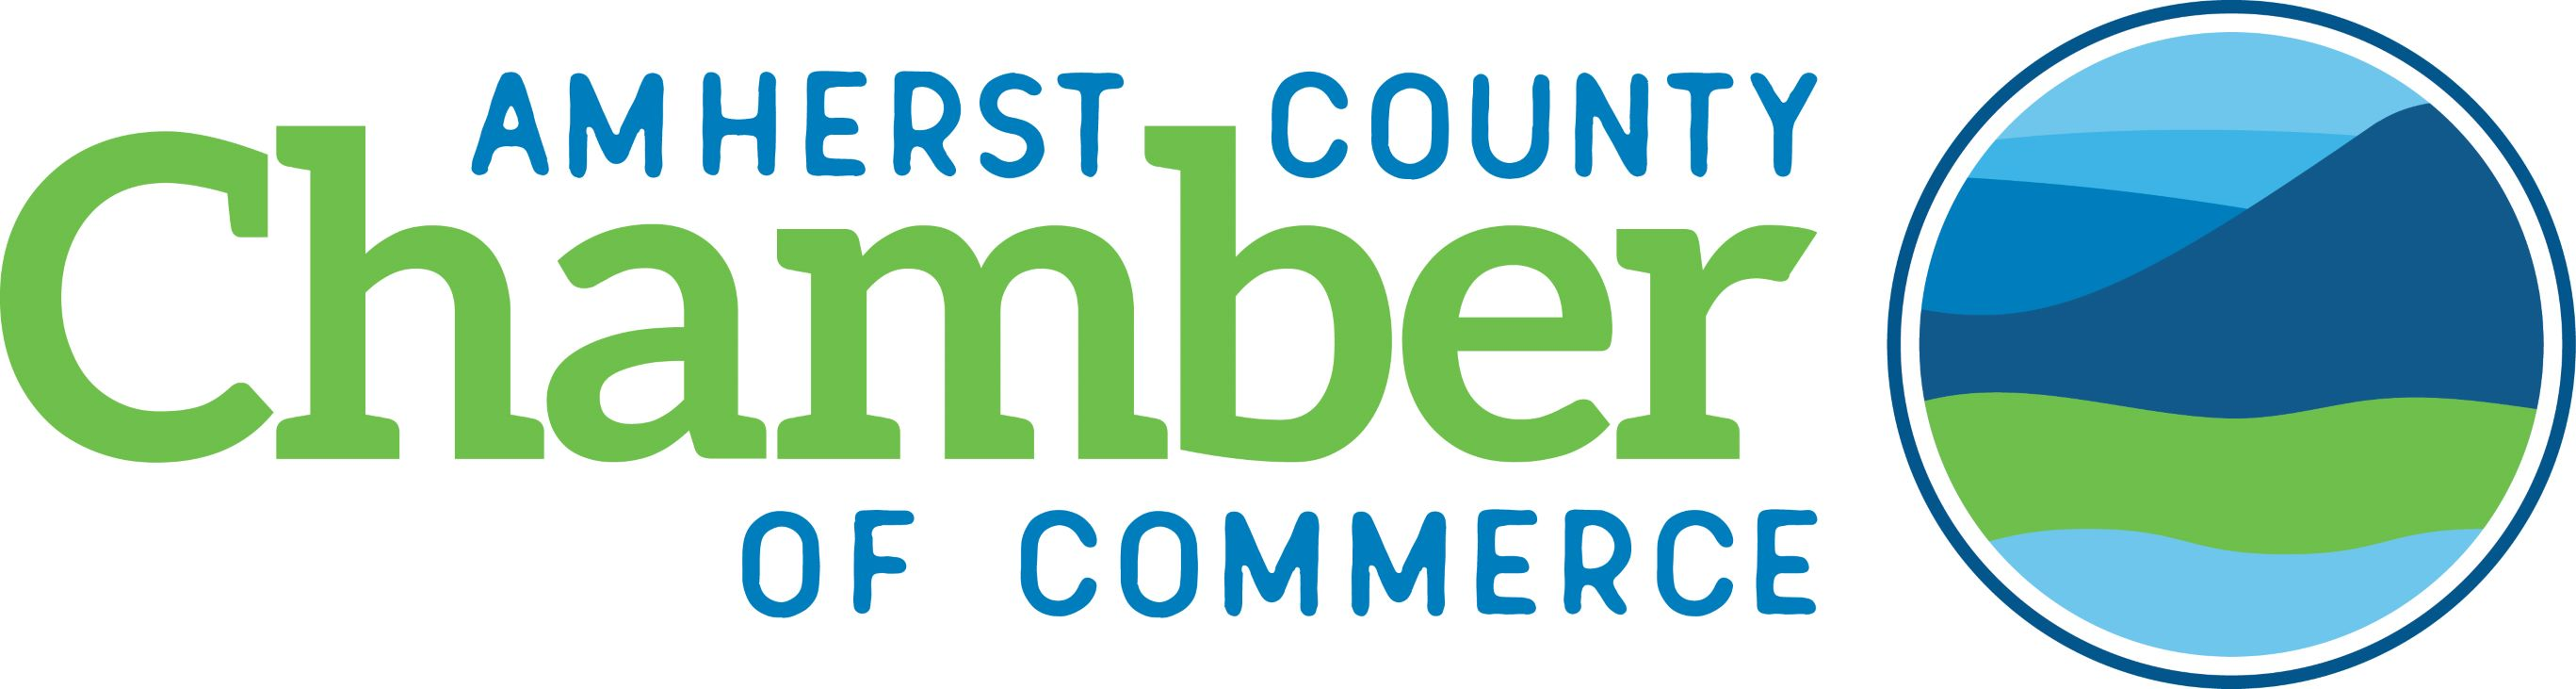 Amherst County Chamber of Commerce